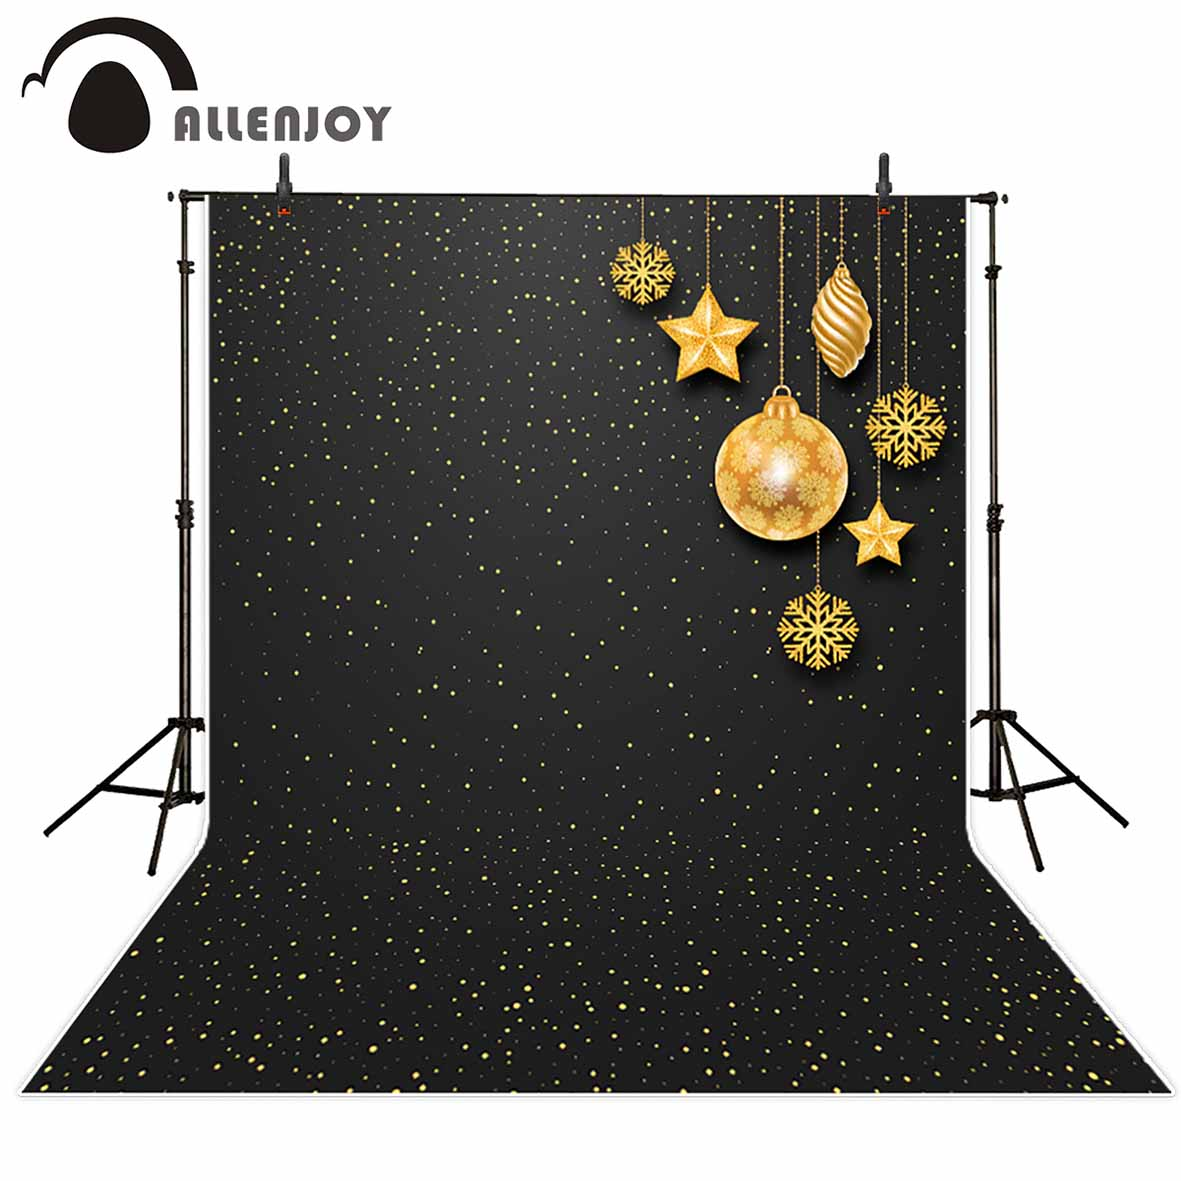 Allenjoy photographic background Black stars spots gold balls Christmas children backdrop photocall professional customize christmas backdrop photography allenjoy snowflake stars blur background photographic studio children s camera digital printing